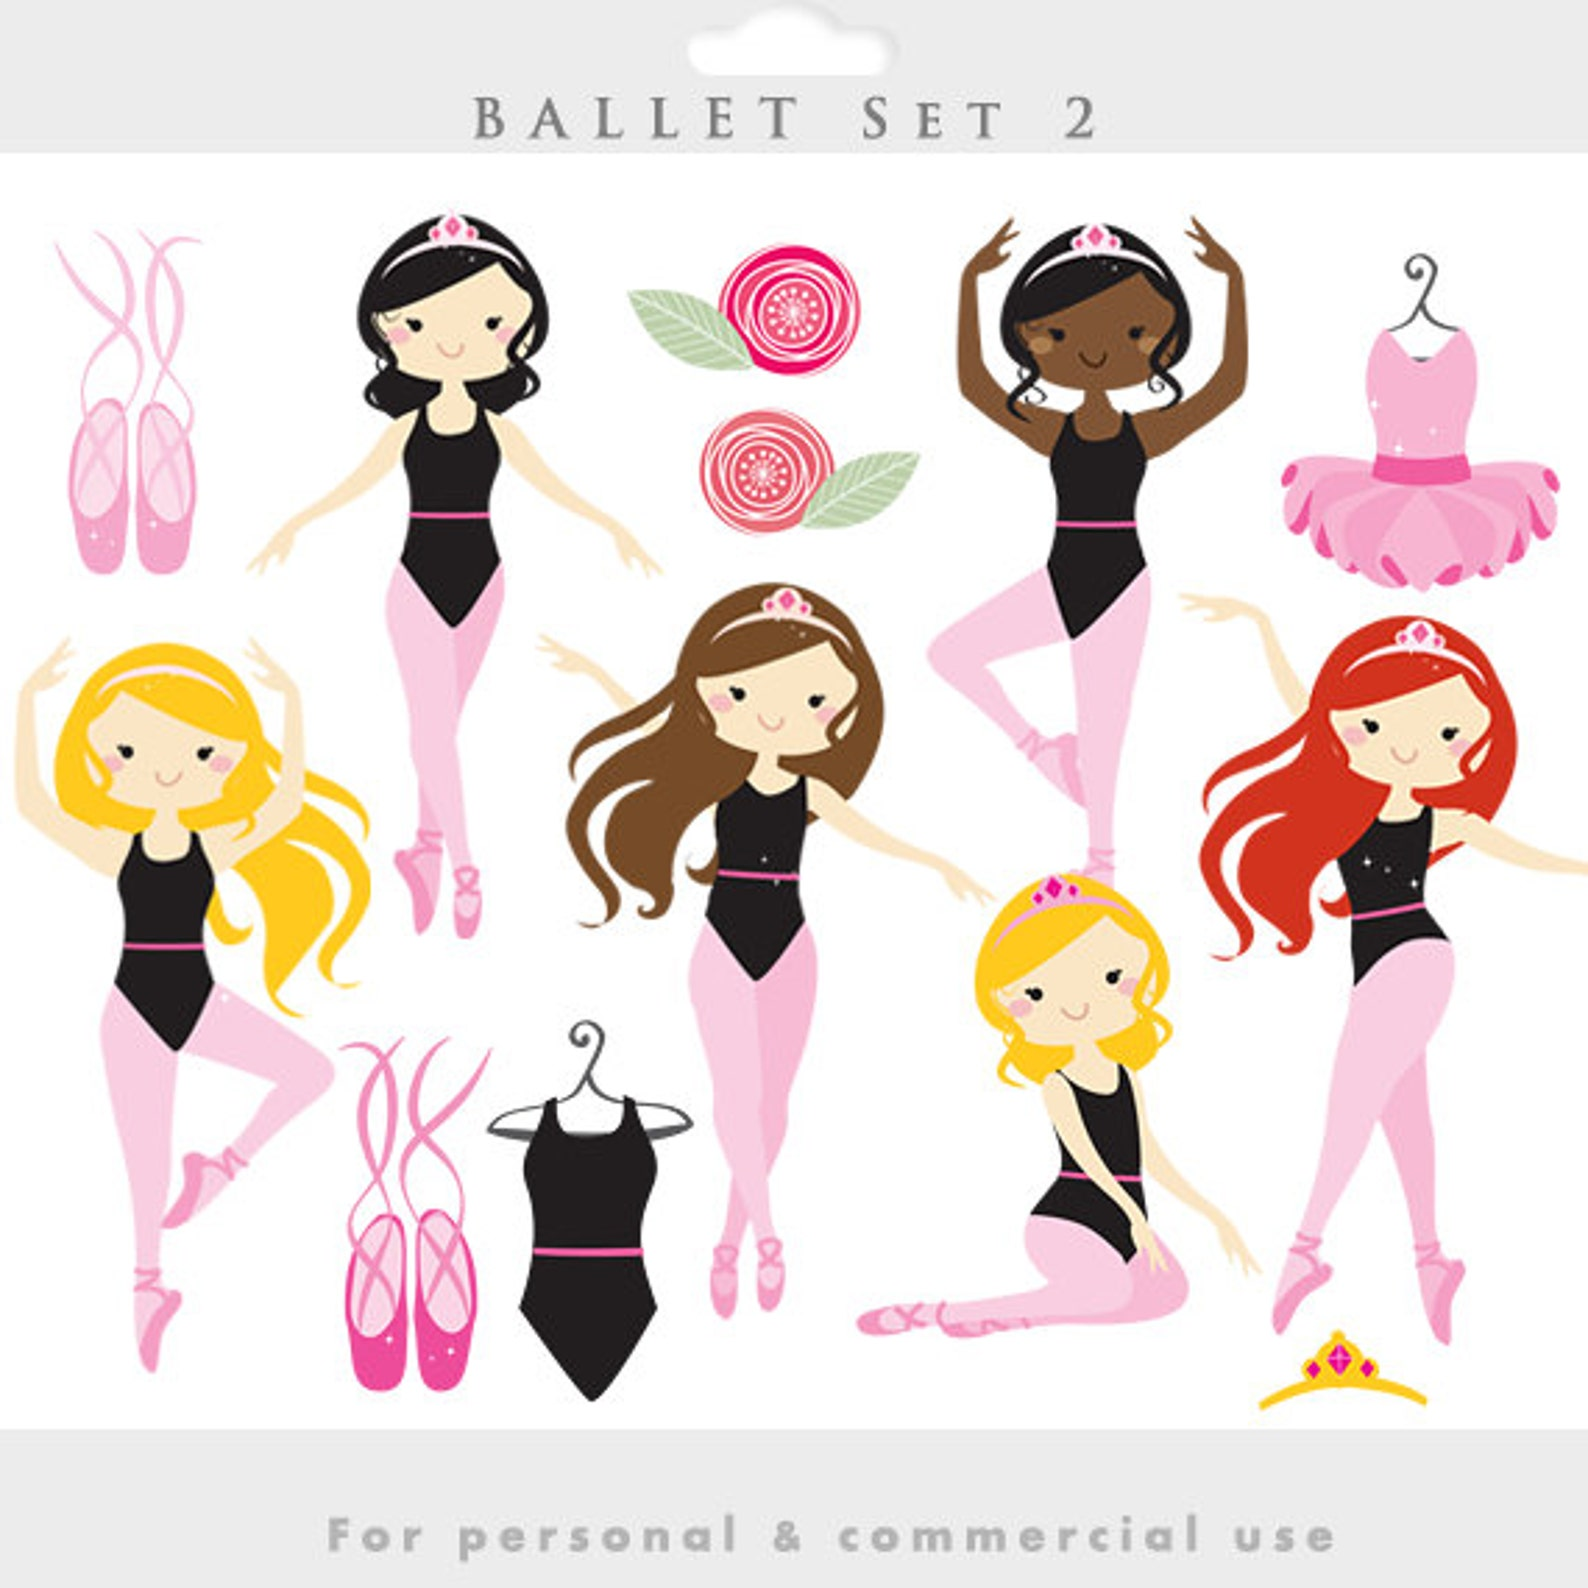 ballerina clipart - ballerina clip art, girl ballet, dancing, dance, dresses, slippers, ballet shoes, girly, for personal and co